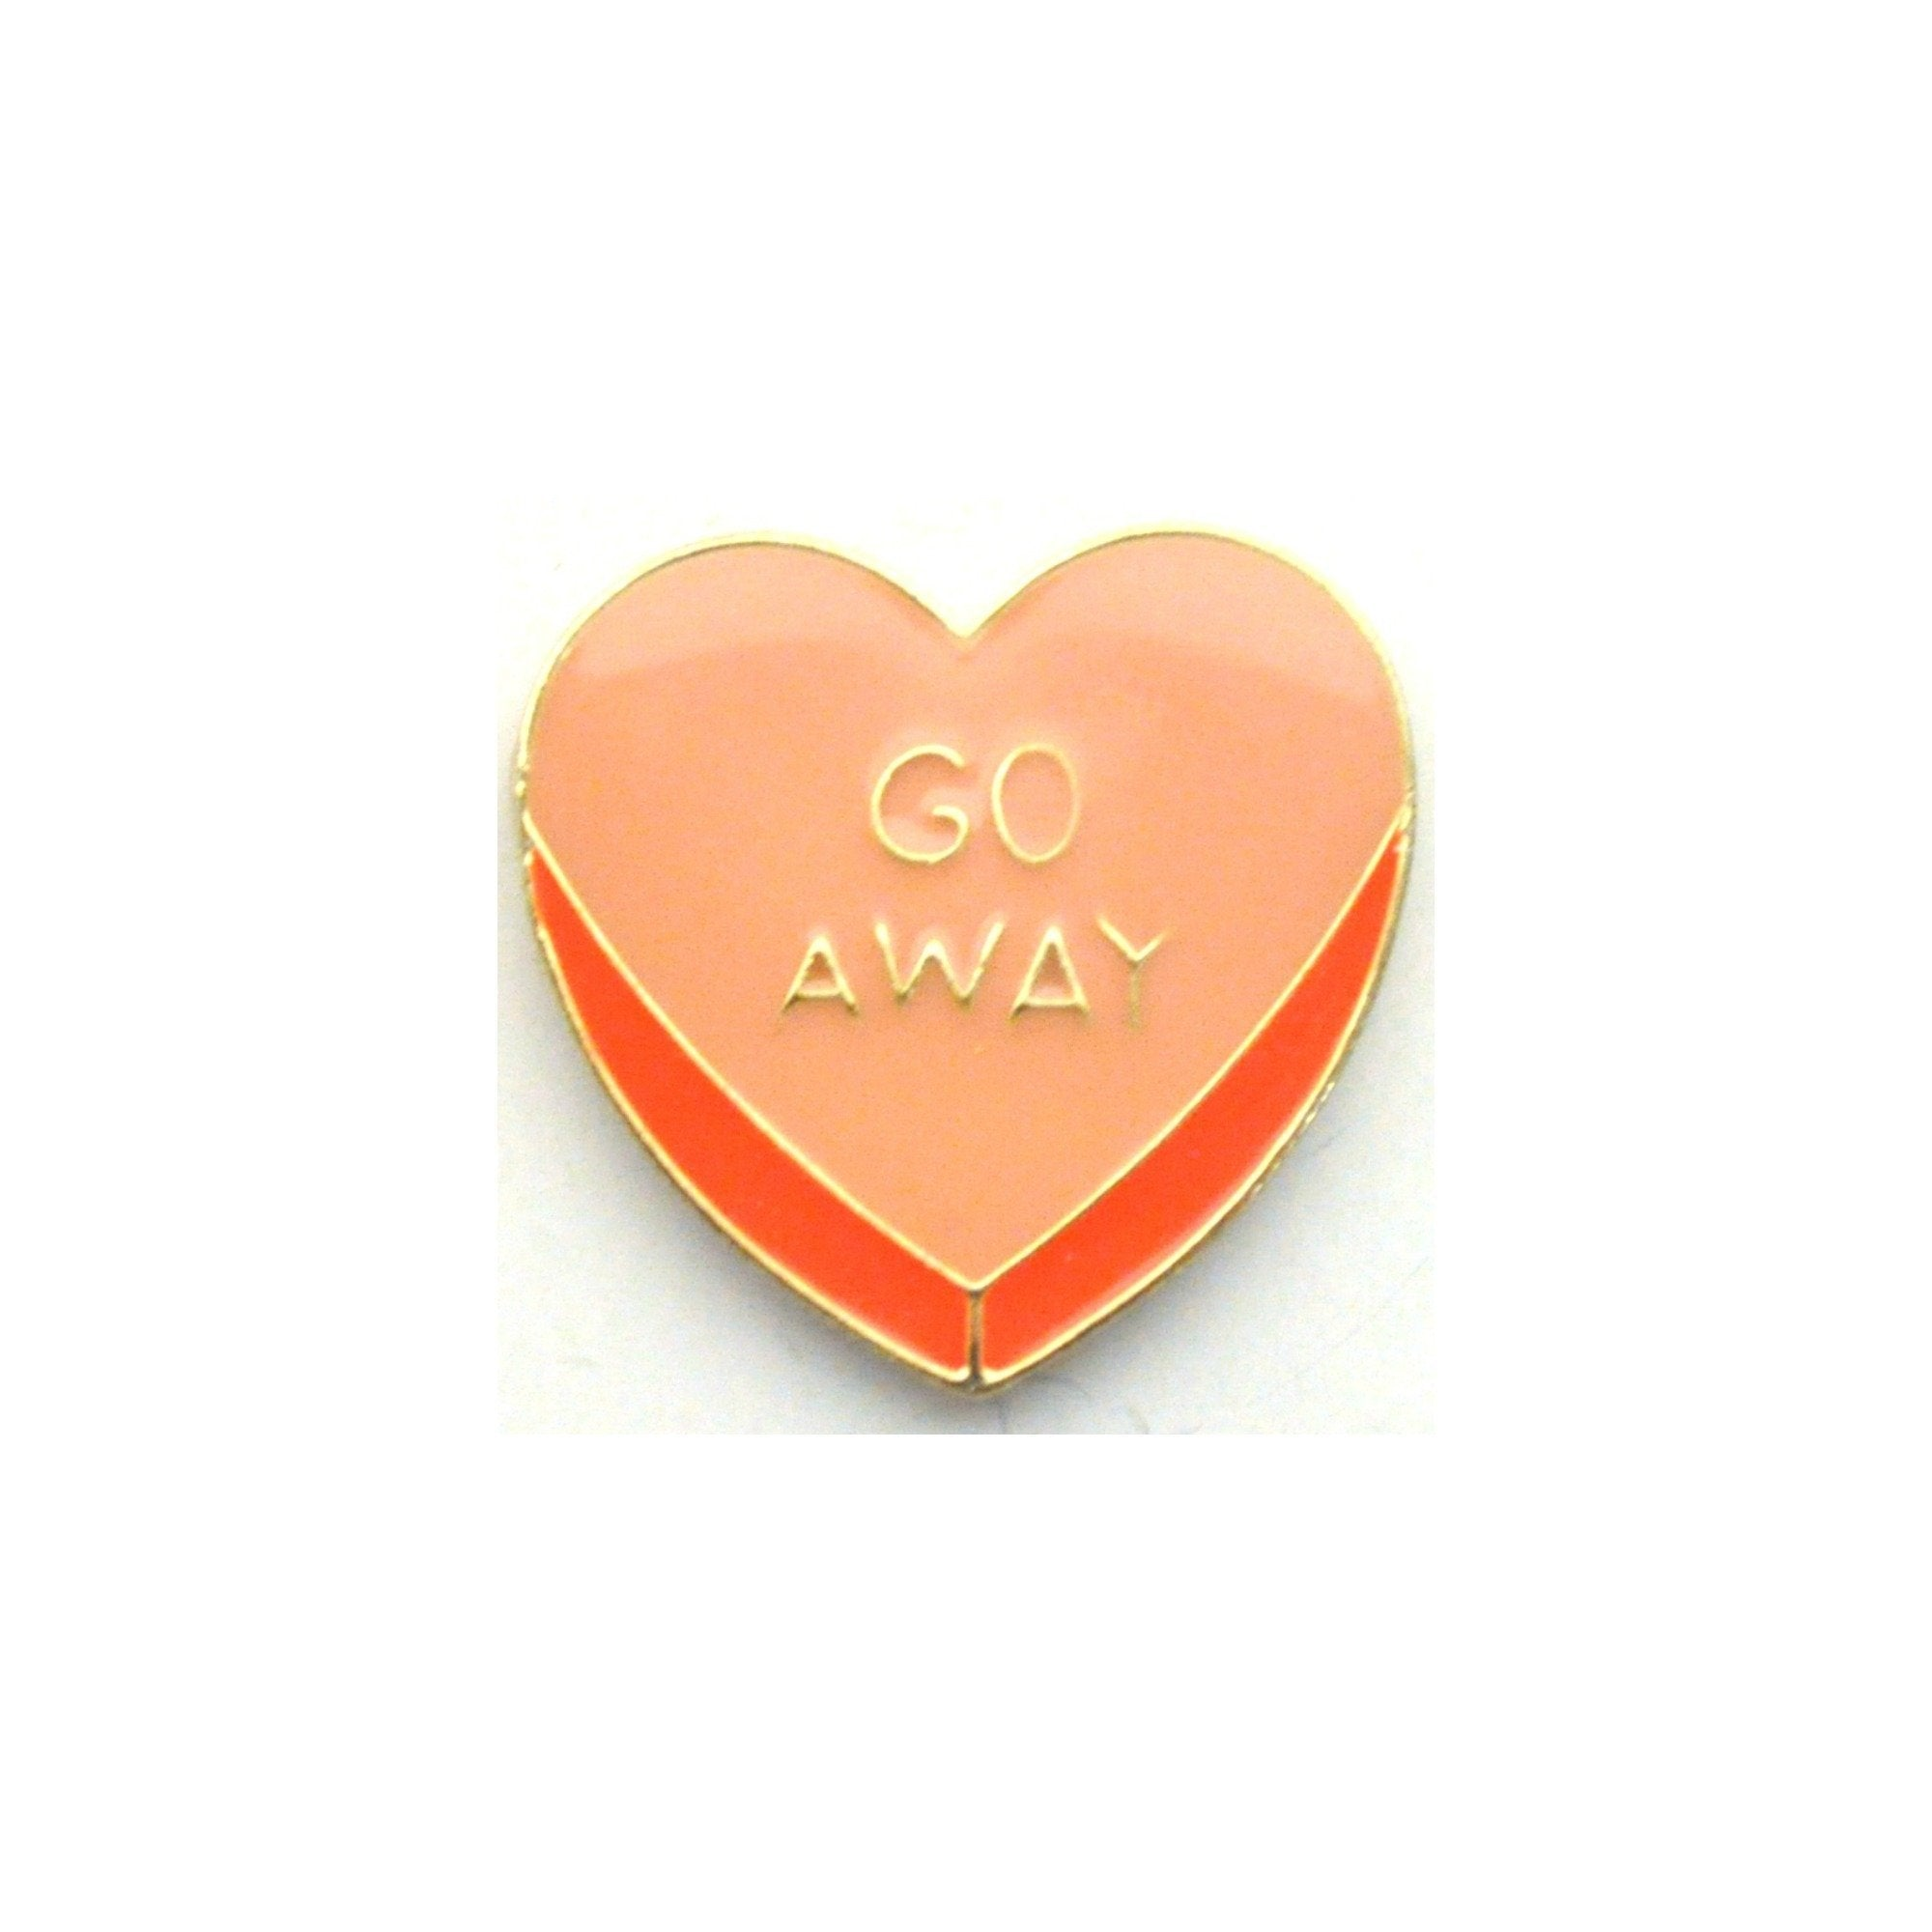 Go Away Love Heart Enamel Lapel Pin Badge - Minimum Mouse